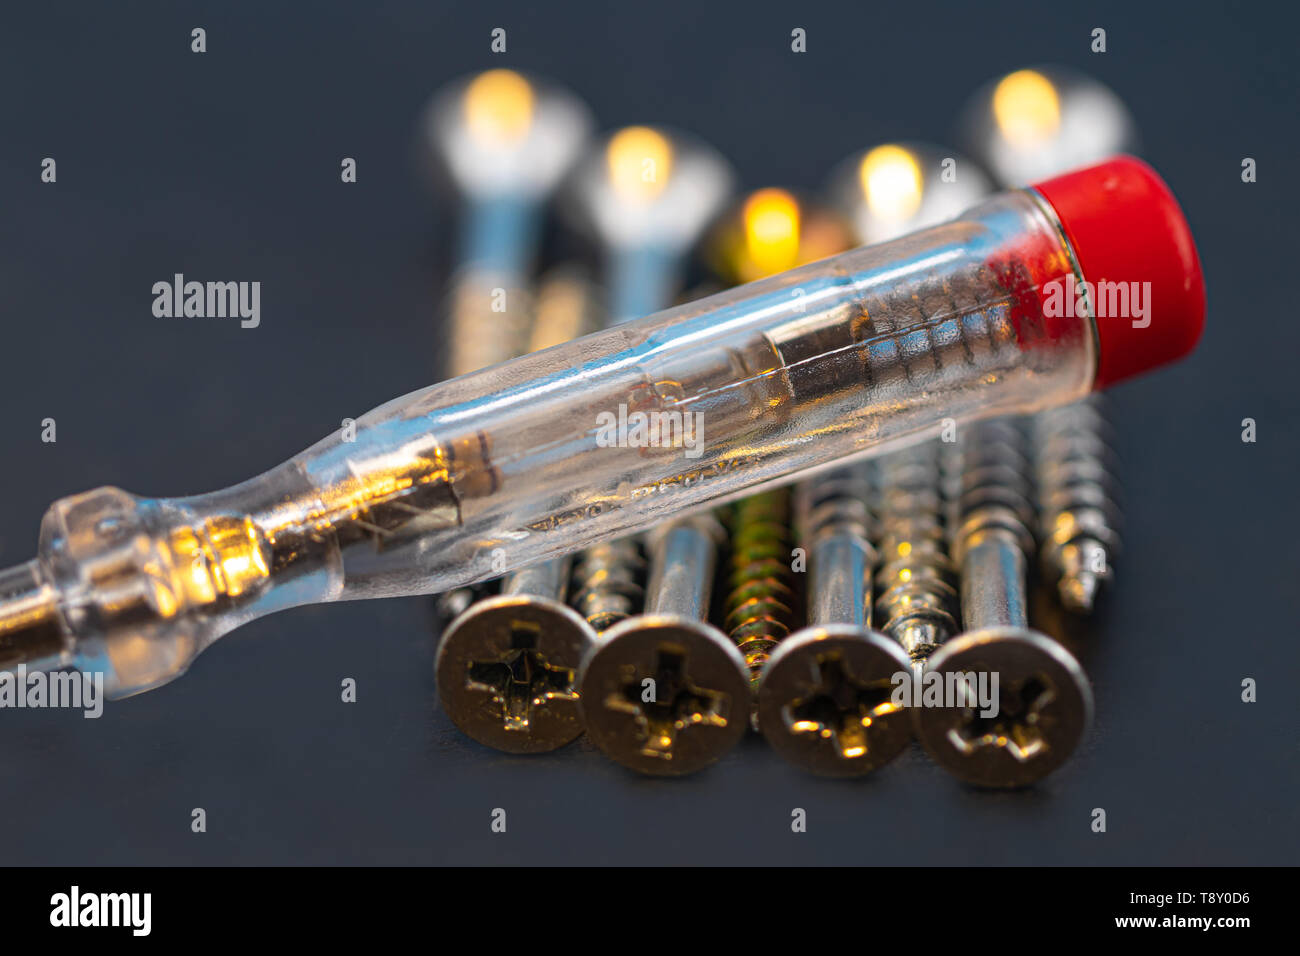 Phase auditor with screw close up detail - Stock Image